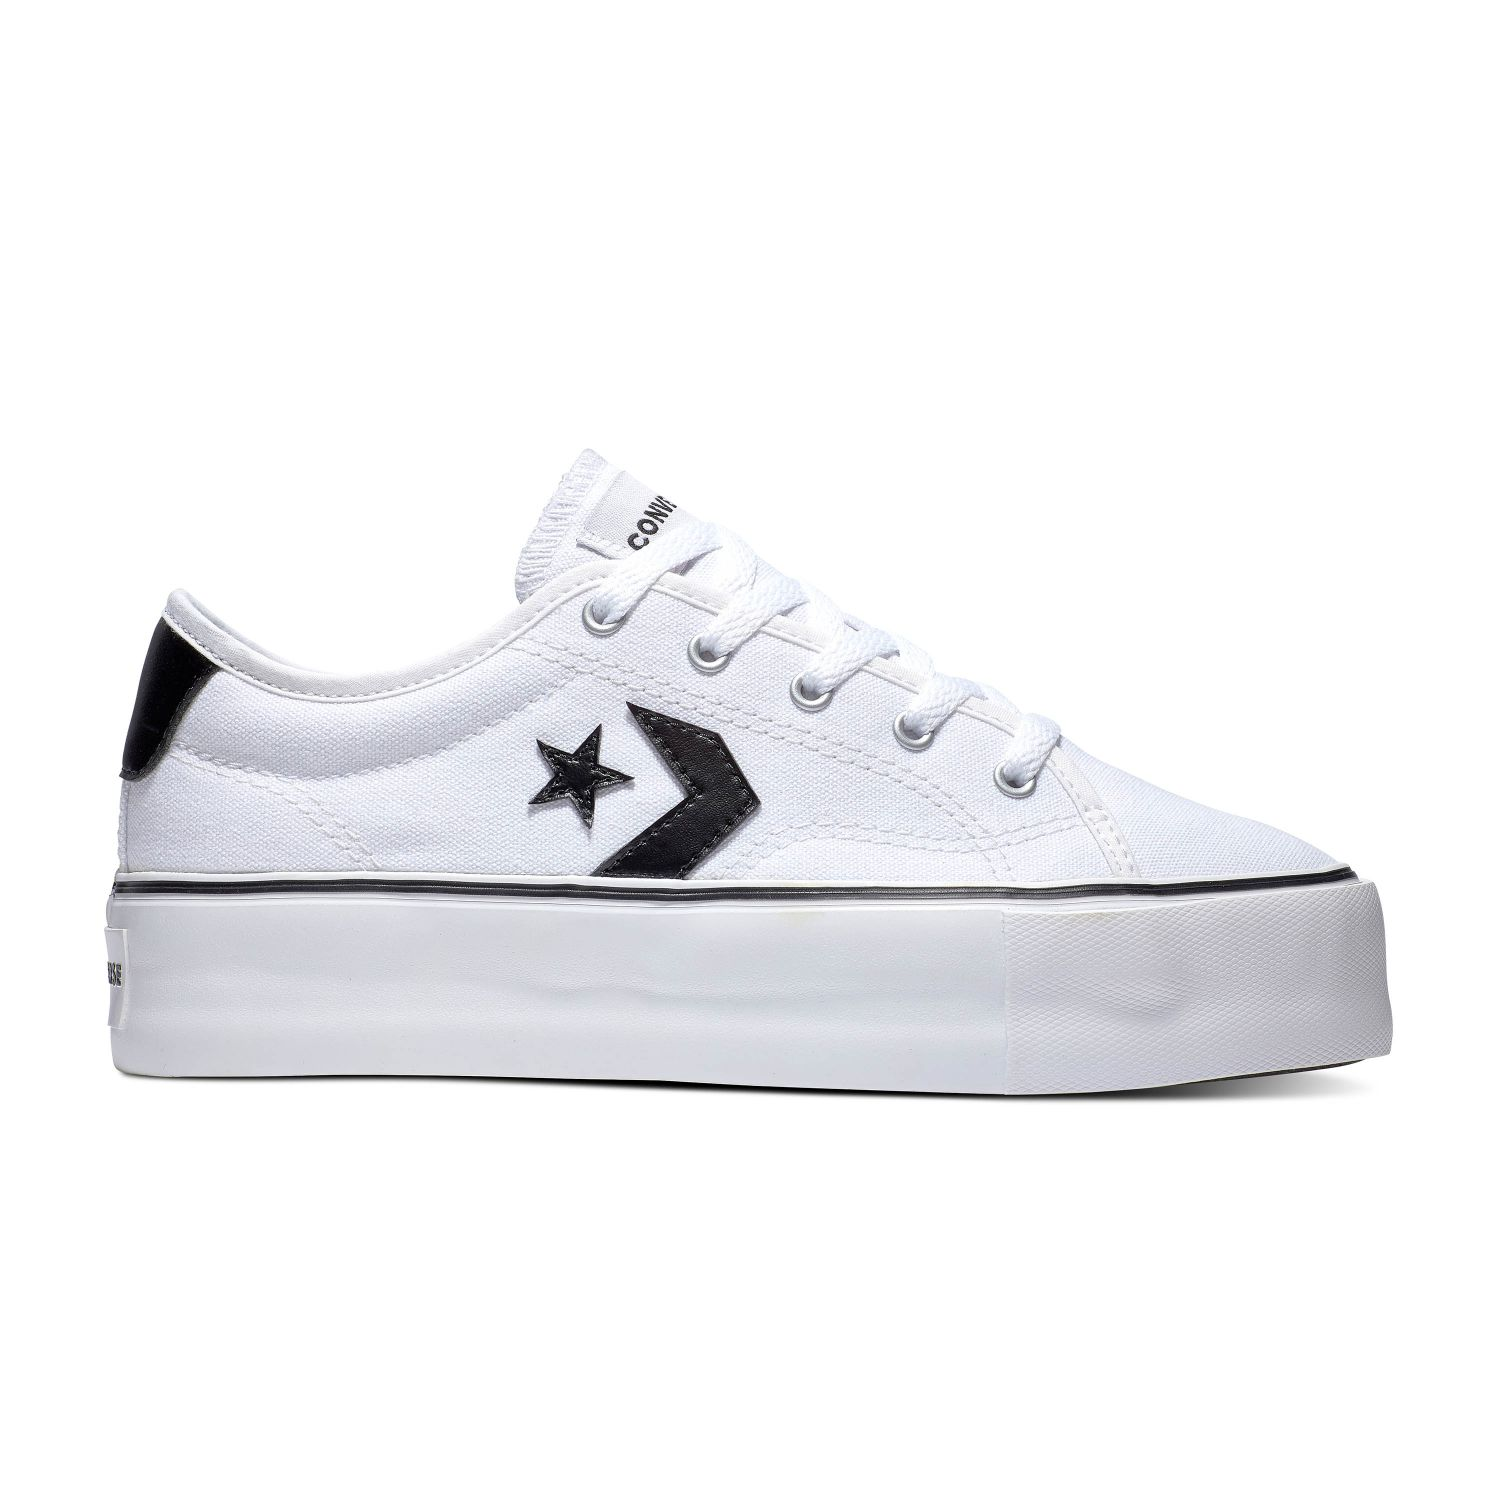 LONA CONVERSE STAR REPLAY PLATFORM OX WOS WHITE